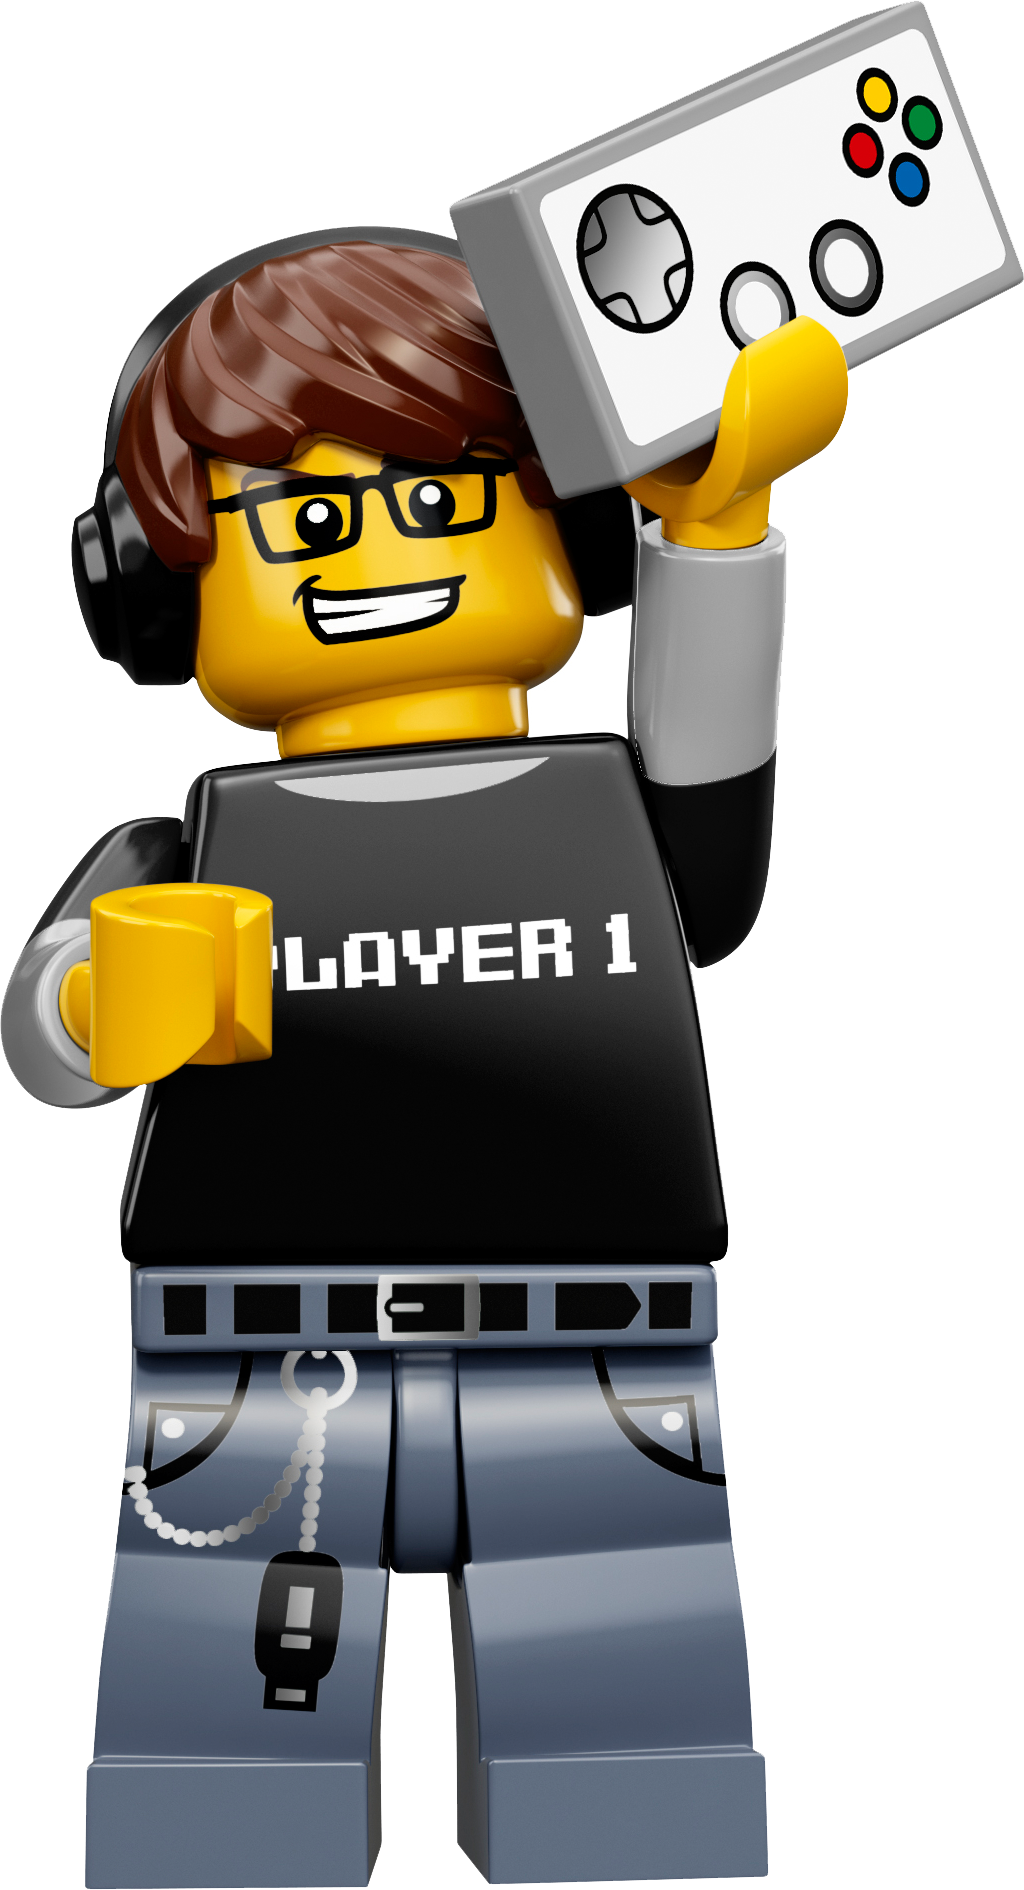 lego minifigure png - photo #2